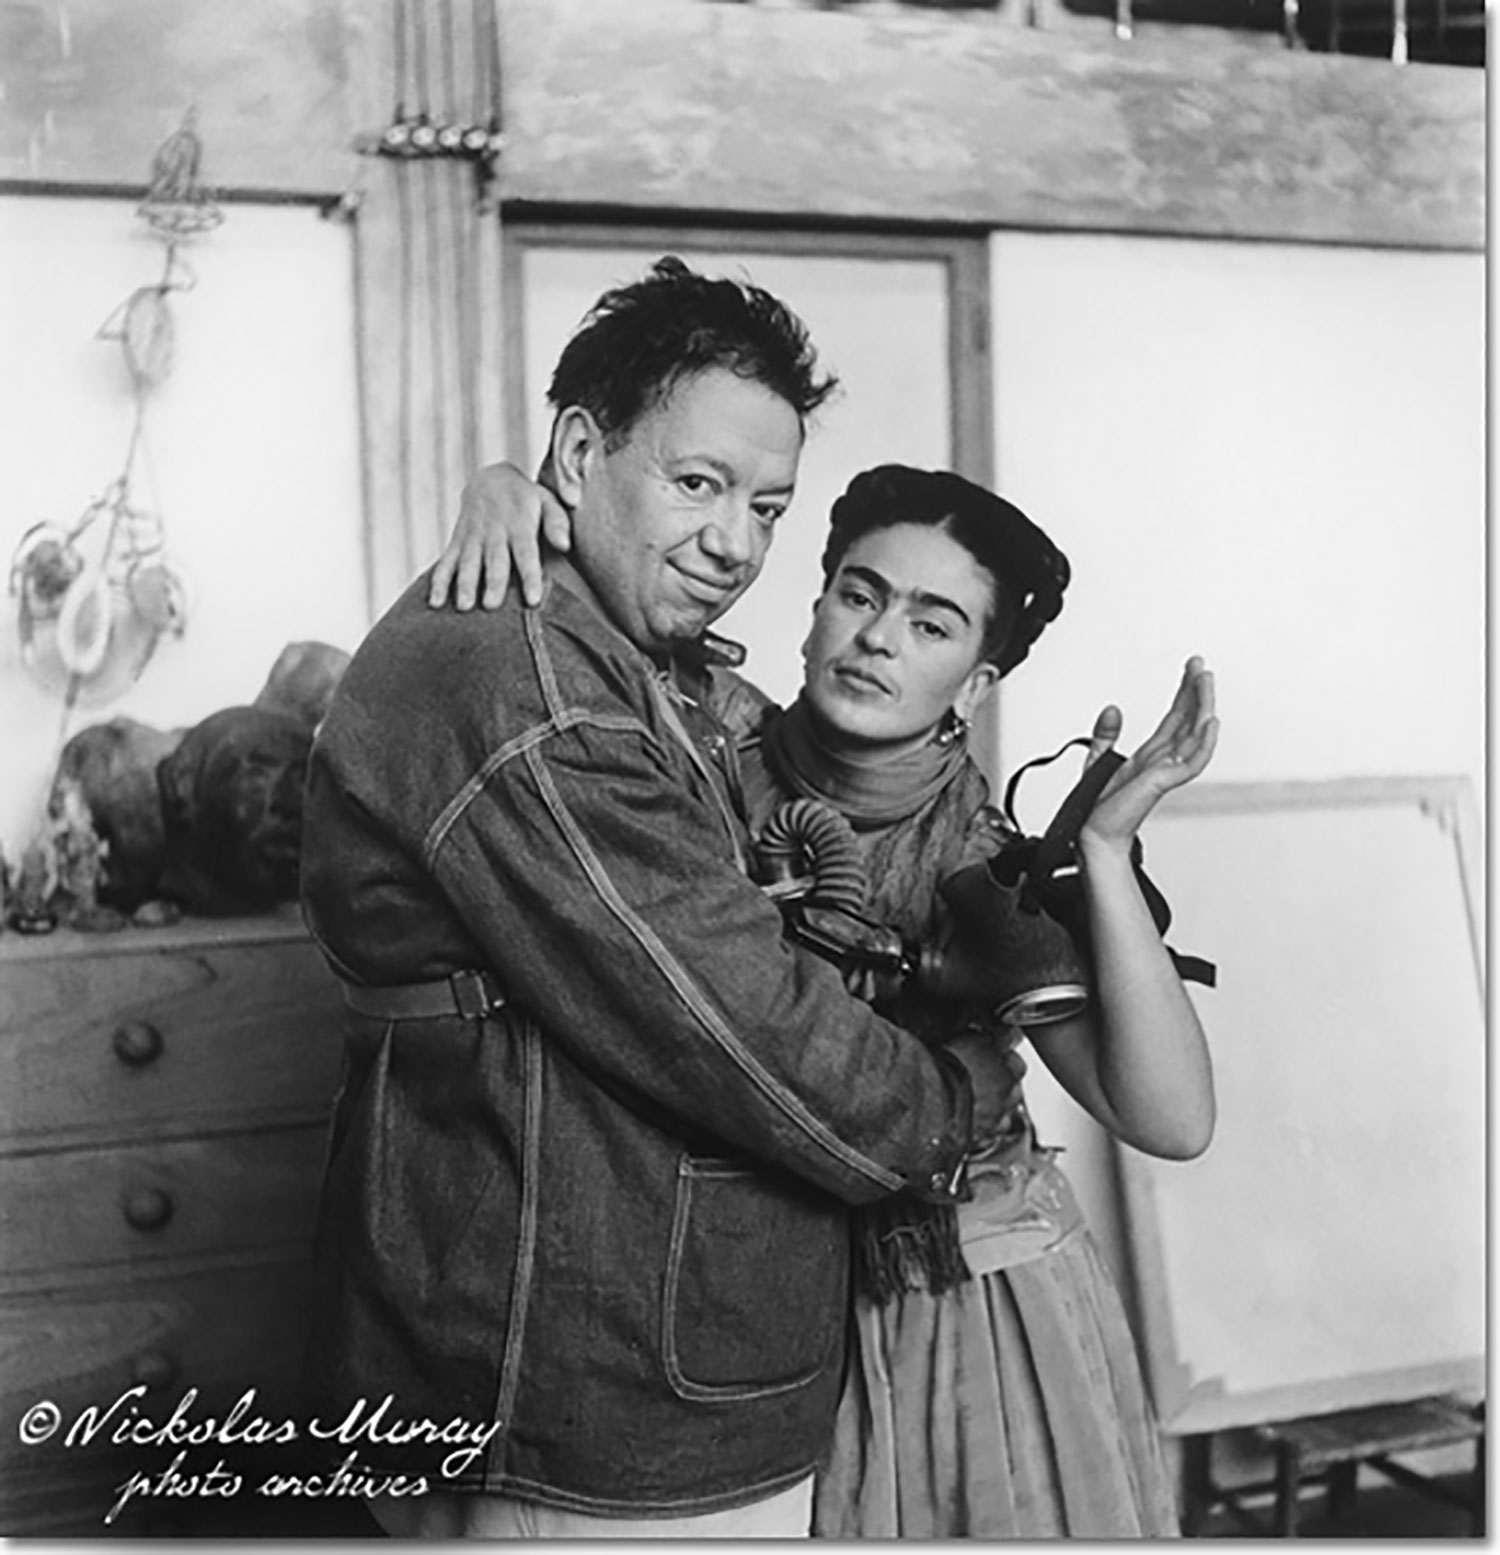 Frida and Diego with Gas Mask. Apparently Diego wore it when he was painting:  Nickolasmuray.com .